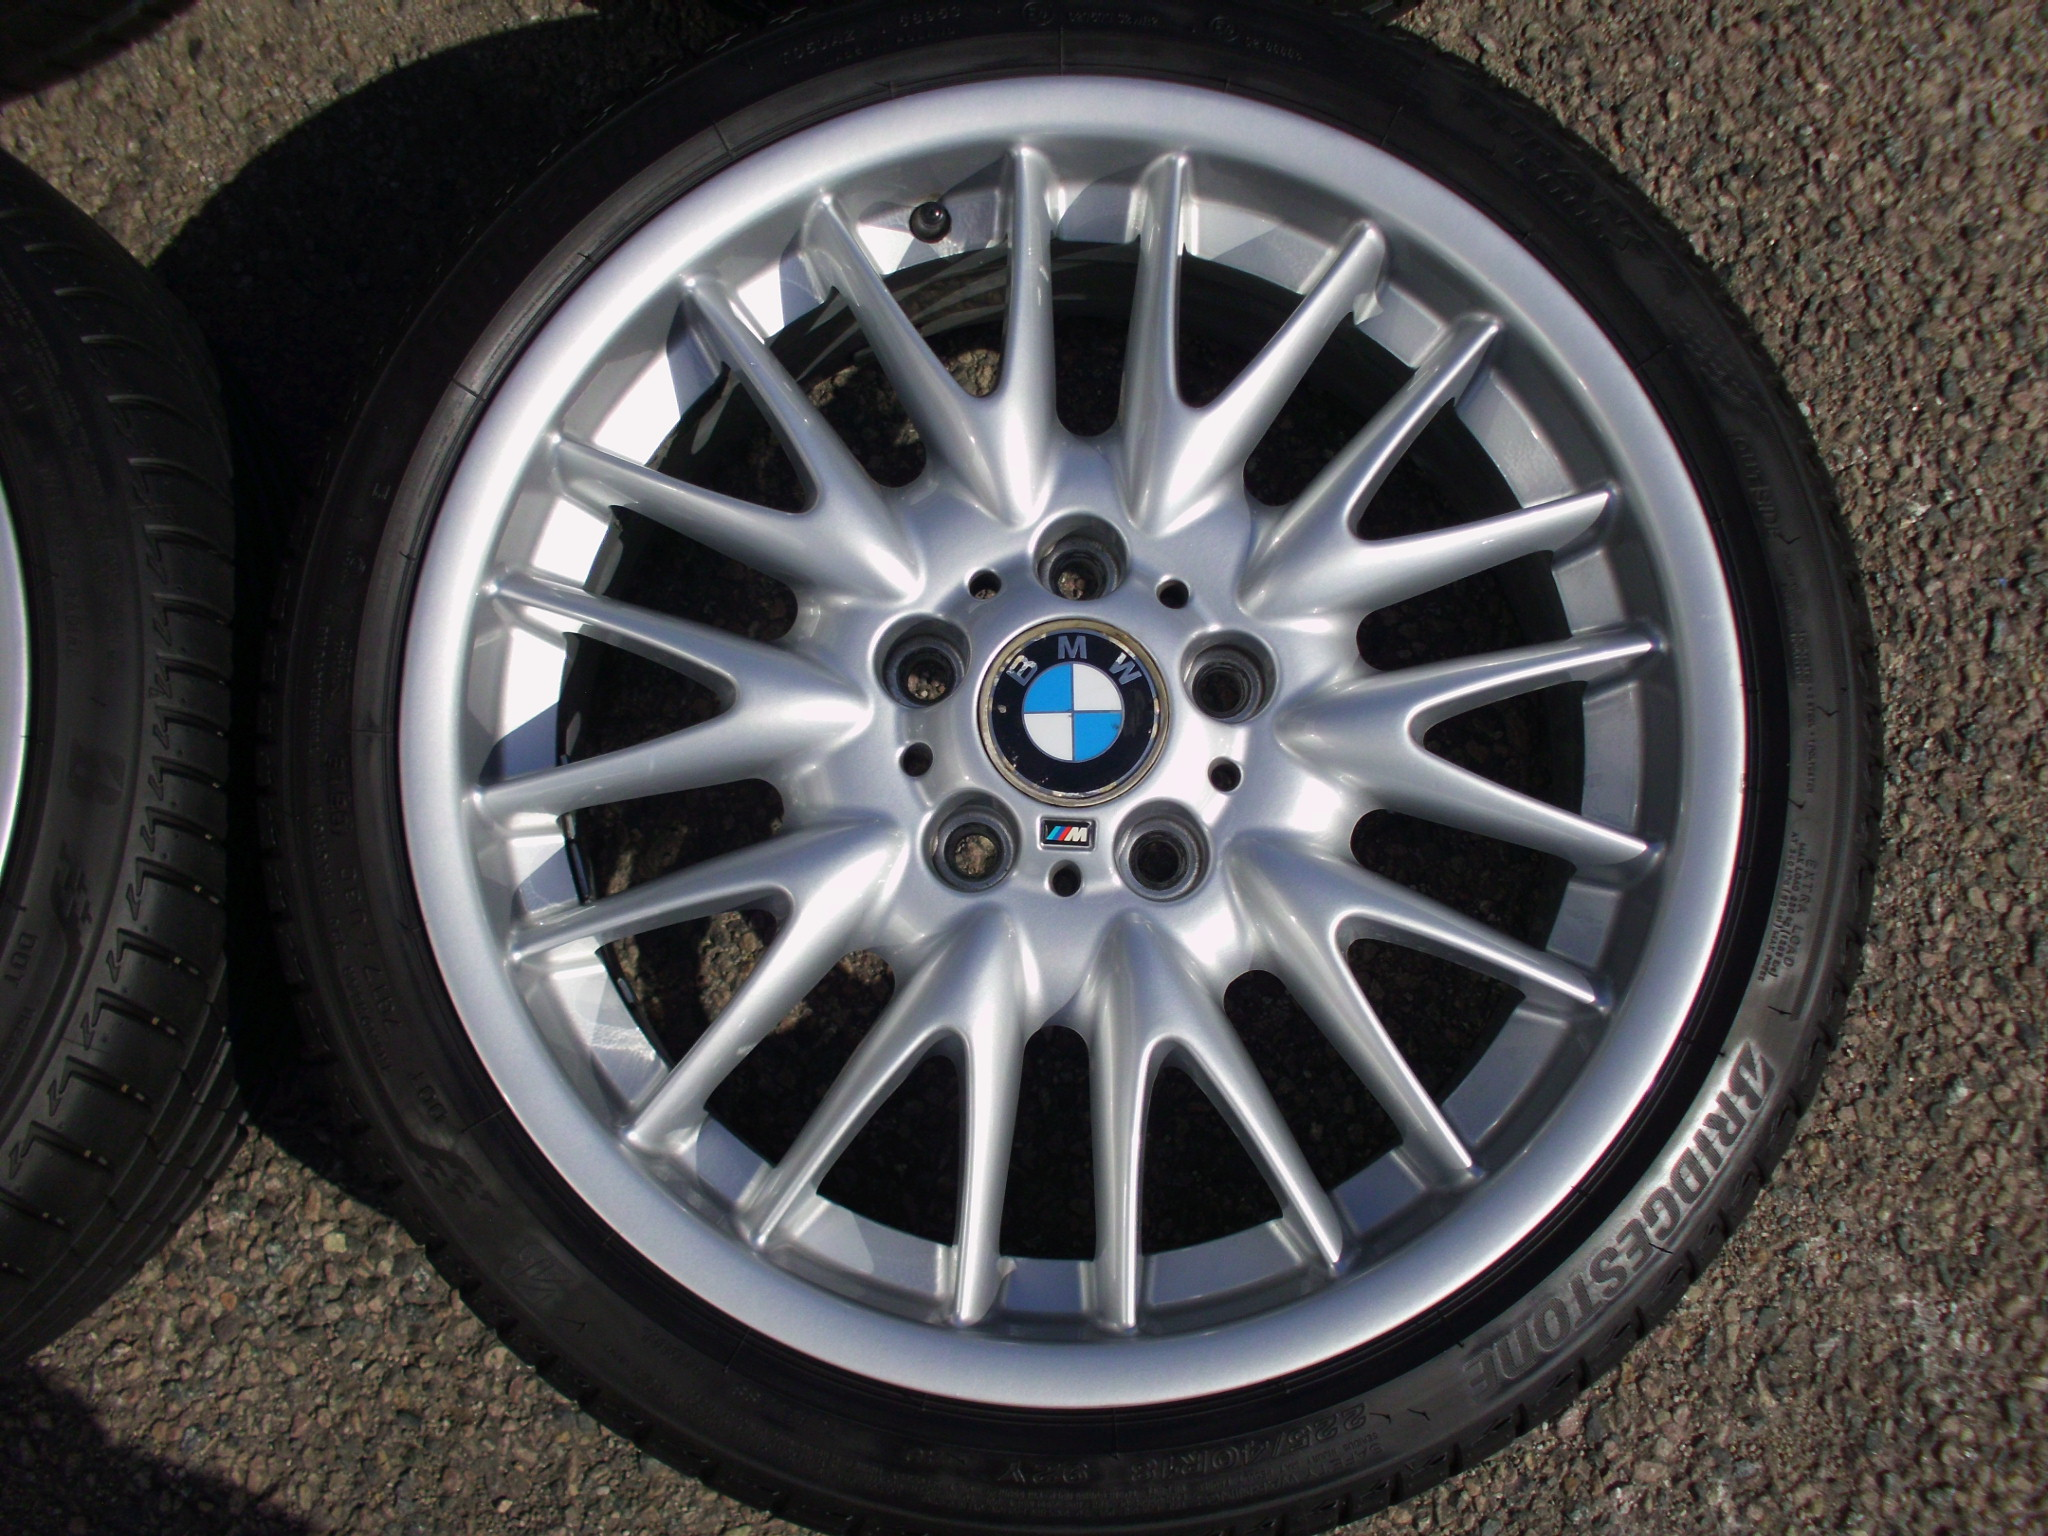 "USED 18"" GENUINE BMW STYLE 72 E46 MV SPORT ALLOY WHEELS,WIDE REAR,EXCELLENT CONDITION INC VG TYRES"